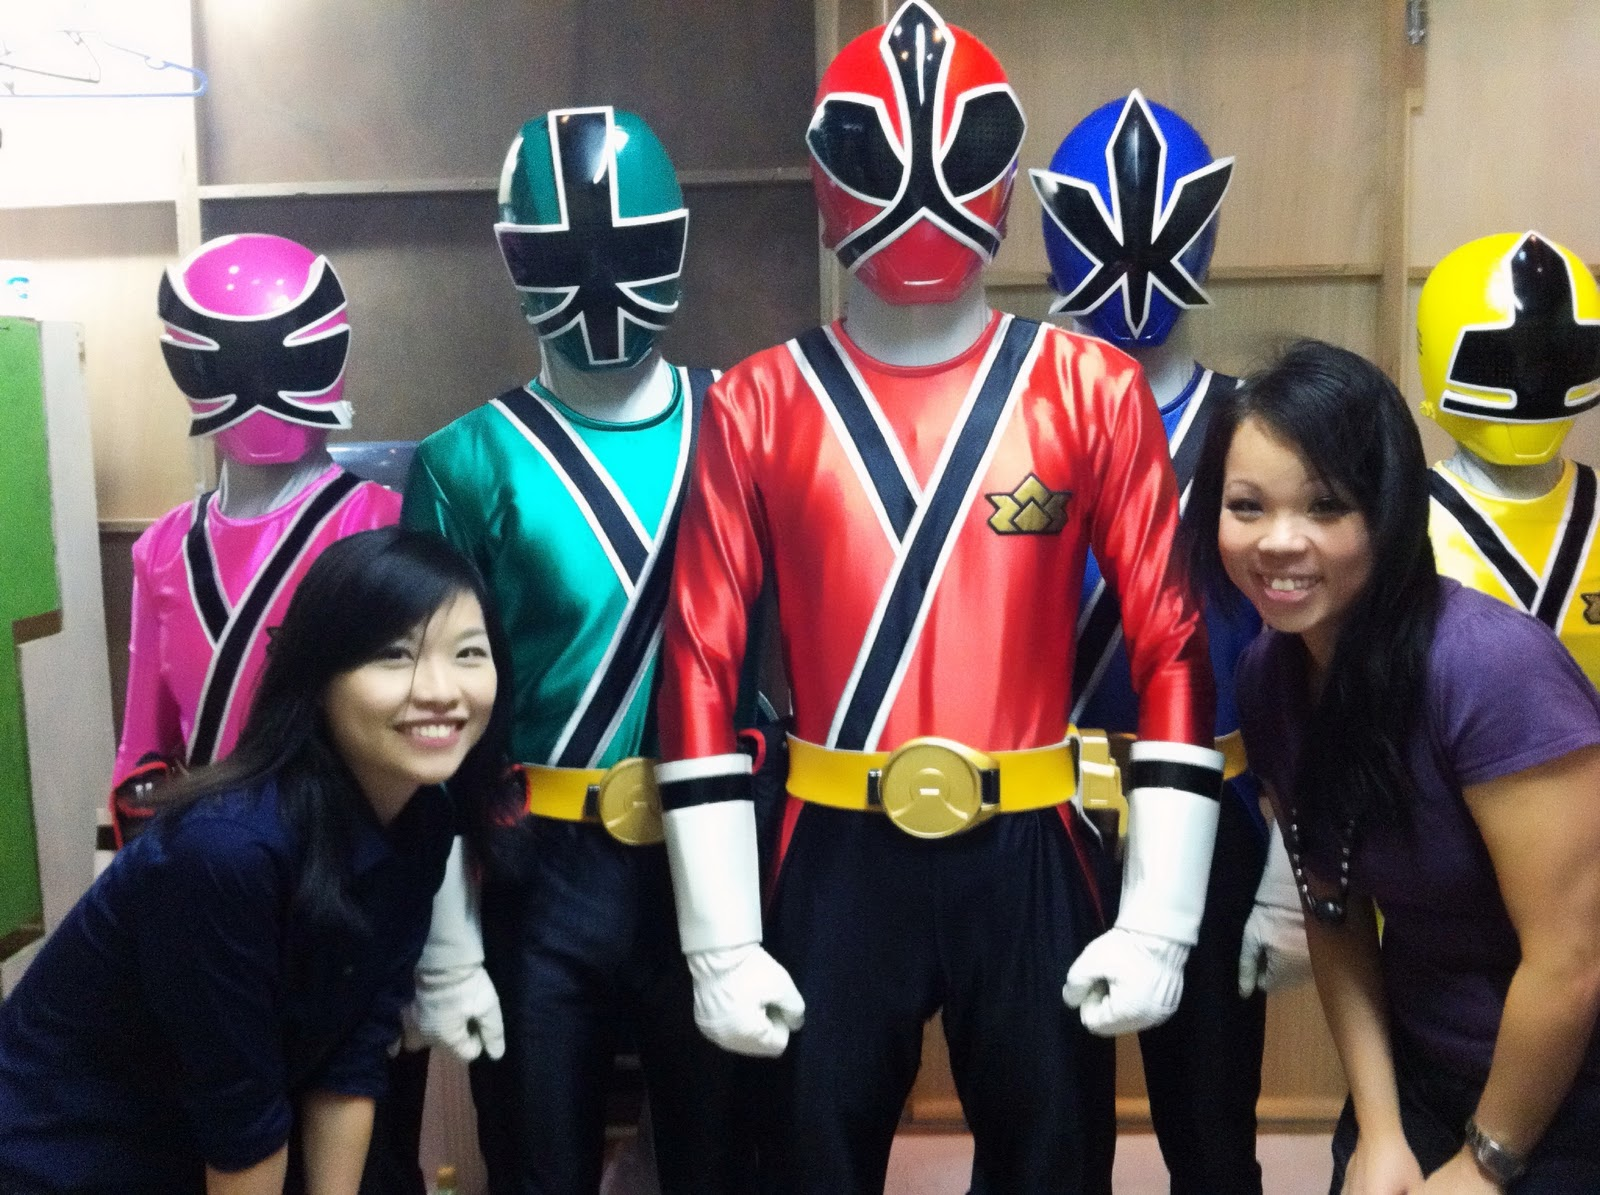 Me we power rangers meet greet at takashimaya gosh it was probably one of the busiest period i ever had in this company x m4hsunfo